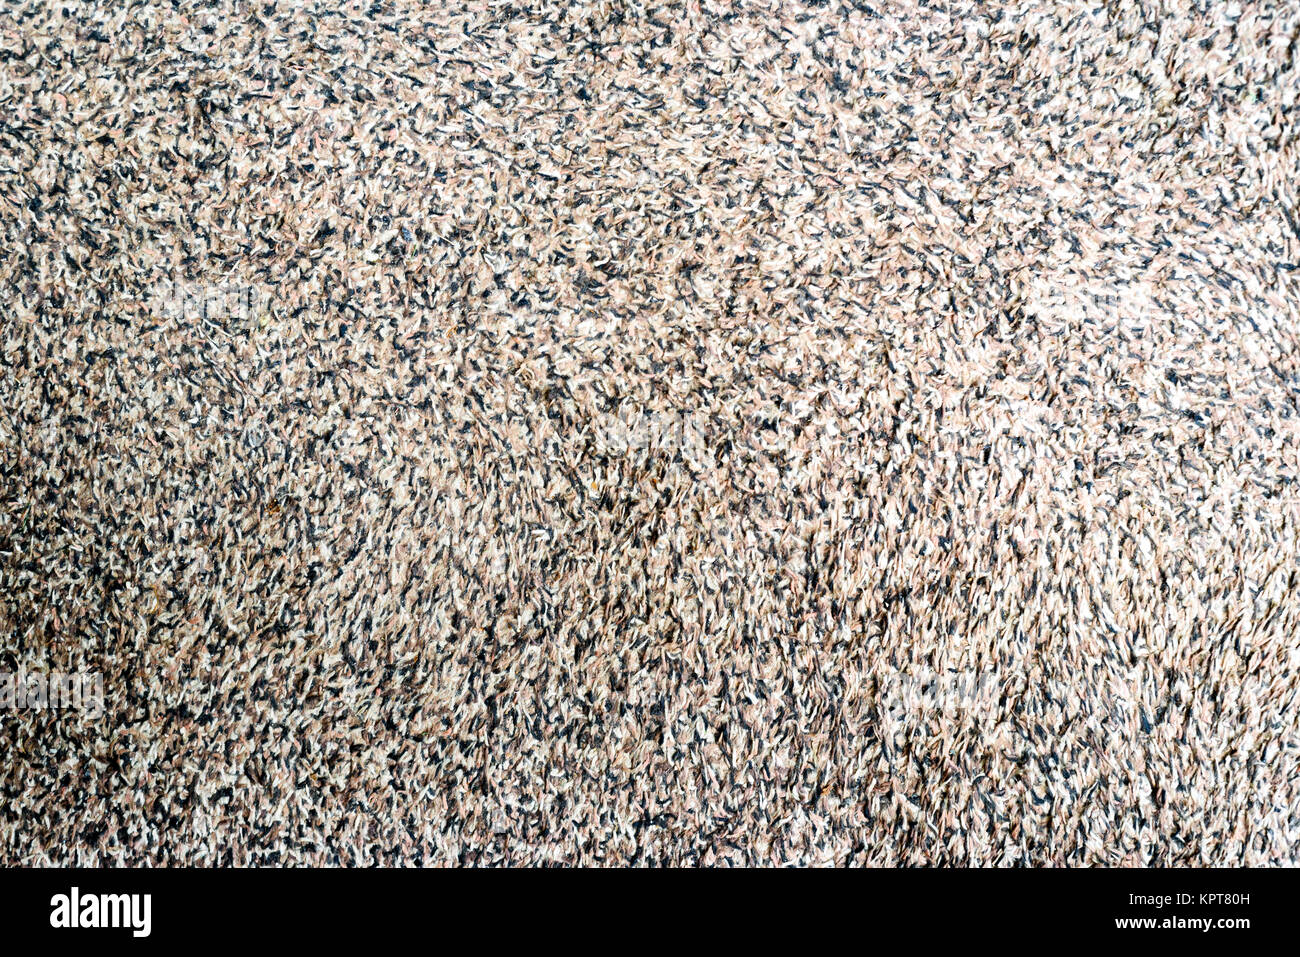 Grubby shagpile carpet texture background laying on the floor in brown and white - Stock Image